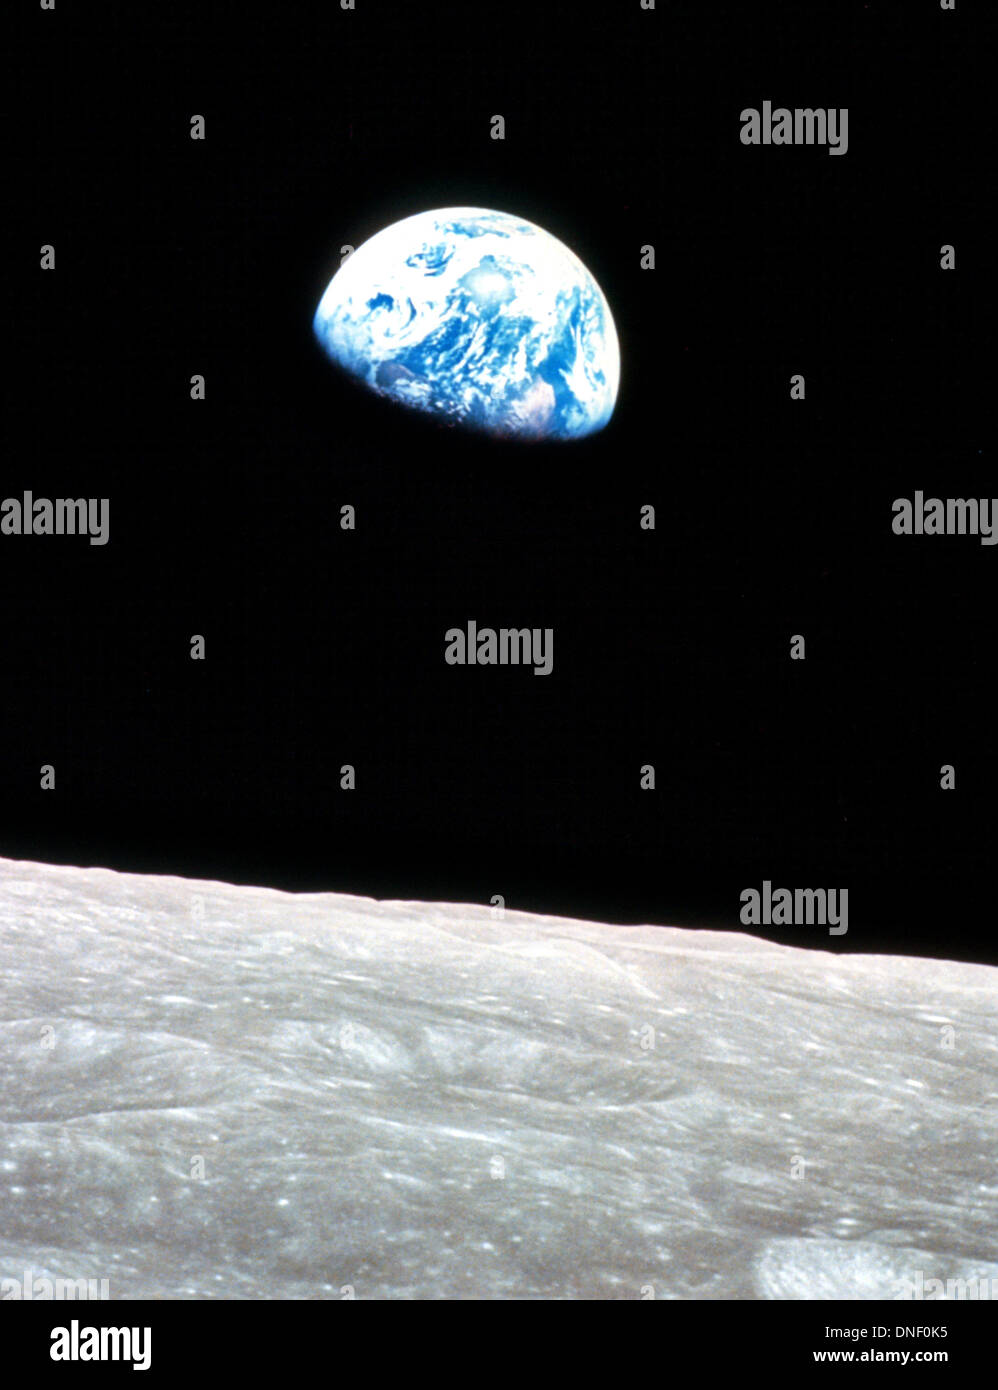 View of the Earth with the lunar horizon taken by Apollo 8 astronaut William Anders as the command module rounded the far side of the Moon on December 24, 1968. The image known as Earthrise was the first image of the Earth from deep space and celebrates 45-years December 24, 2013. - Stock Image